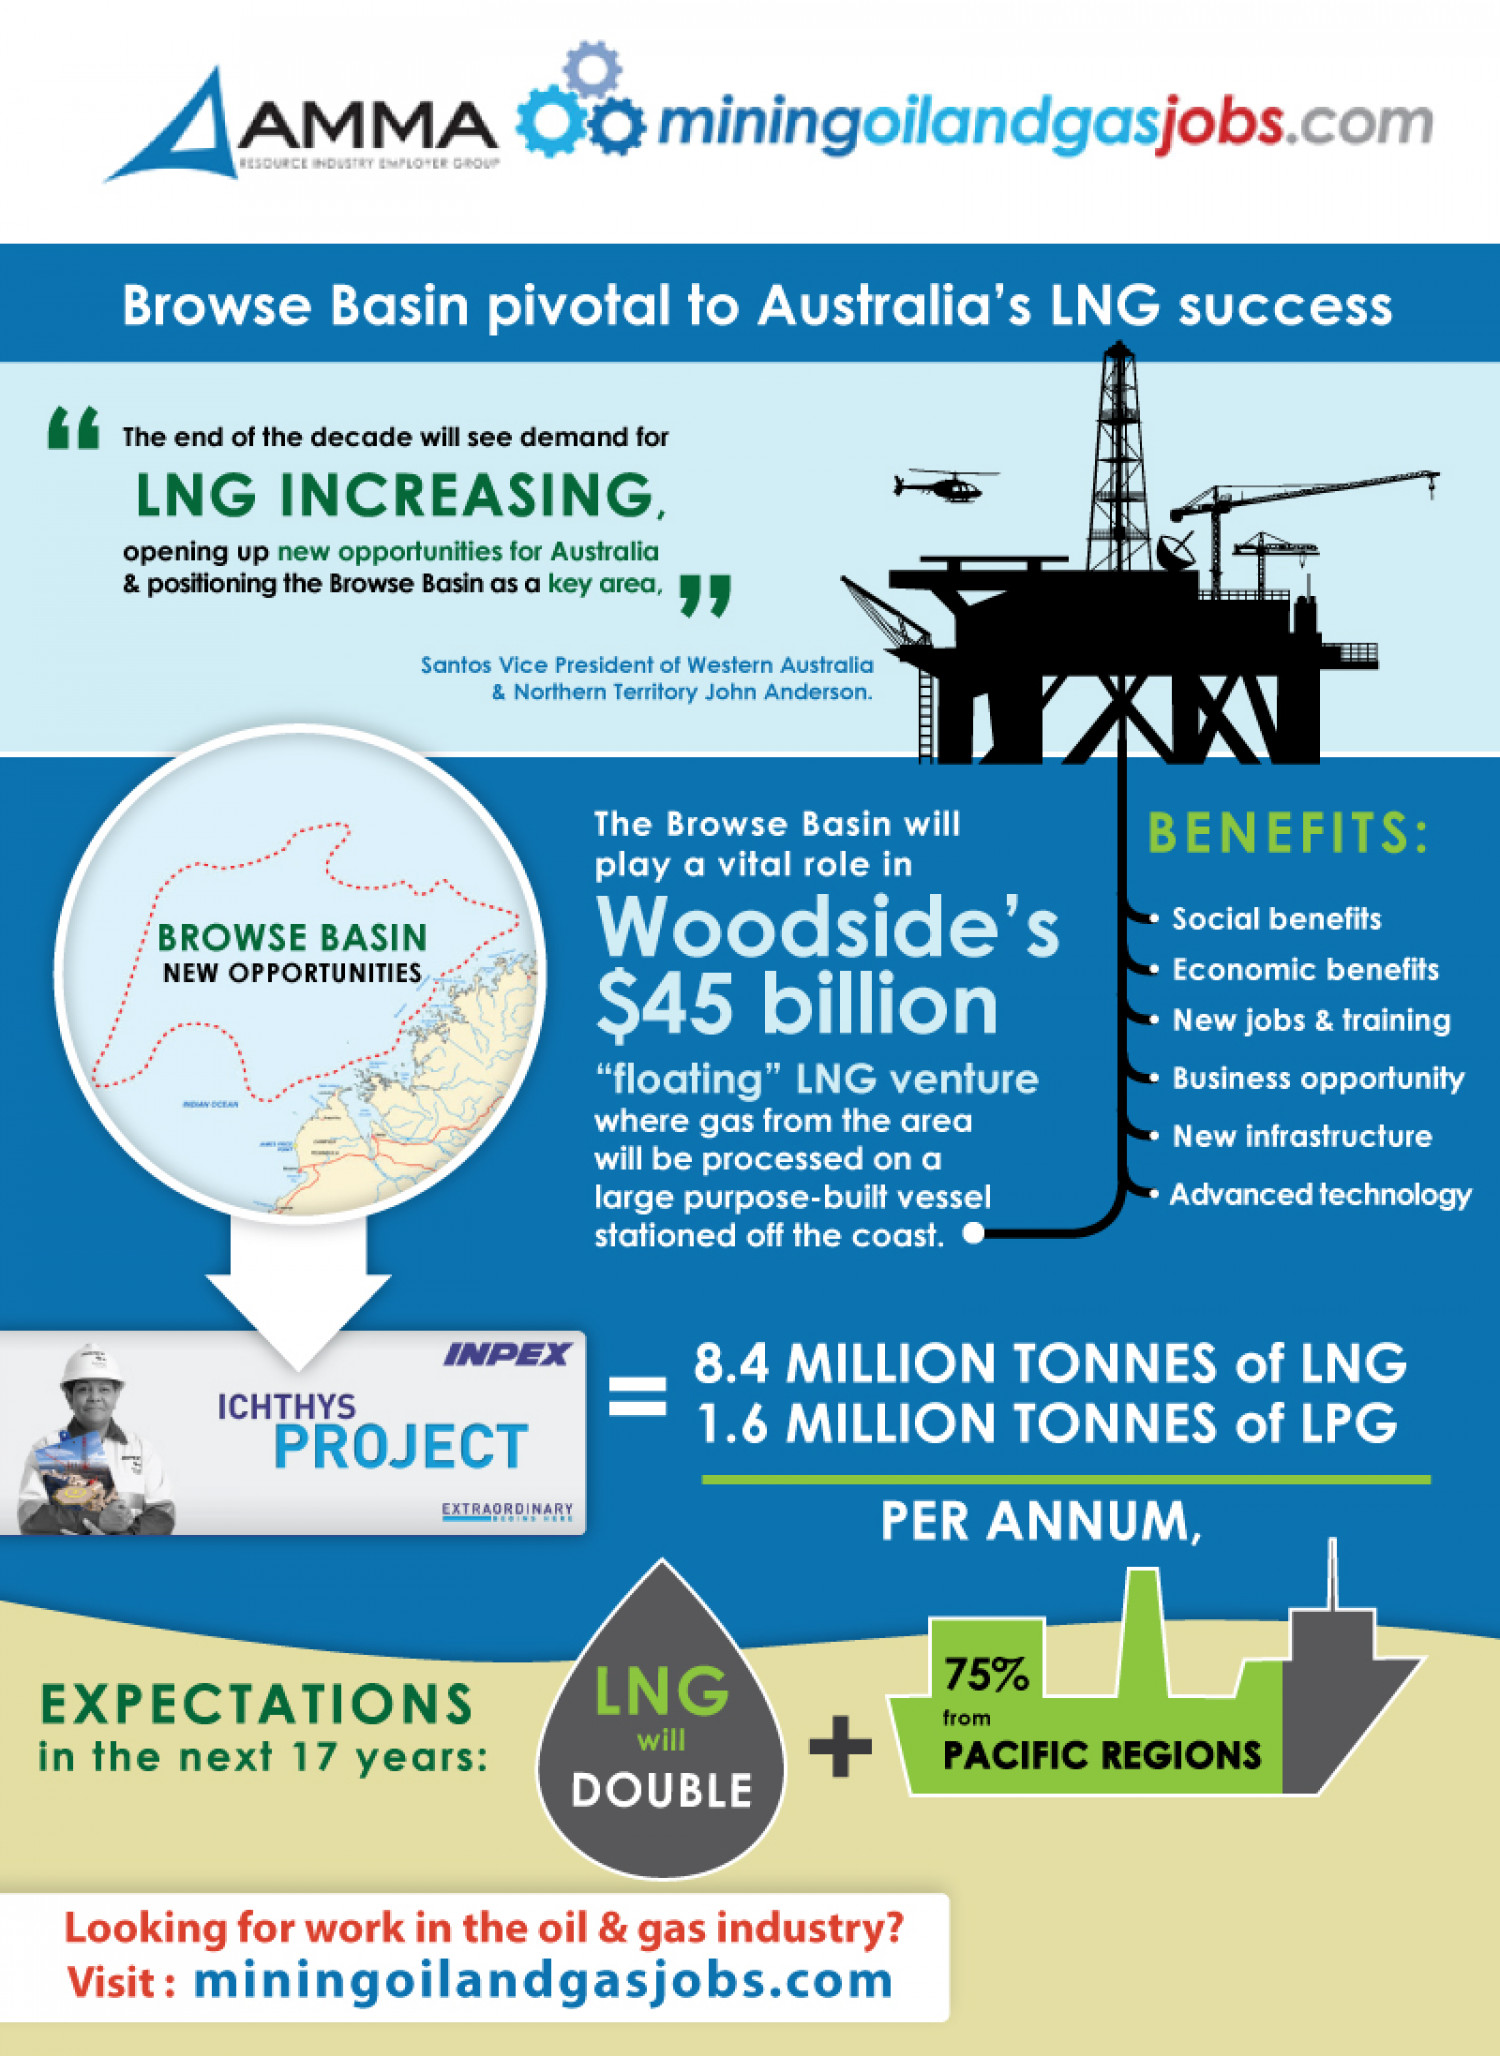 Browse Basin Pivotal to Australia's LNG Success Infographic